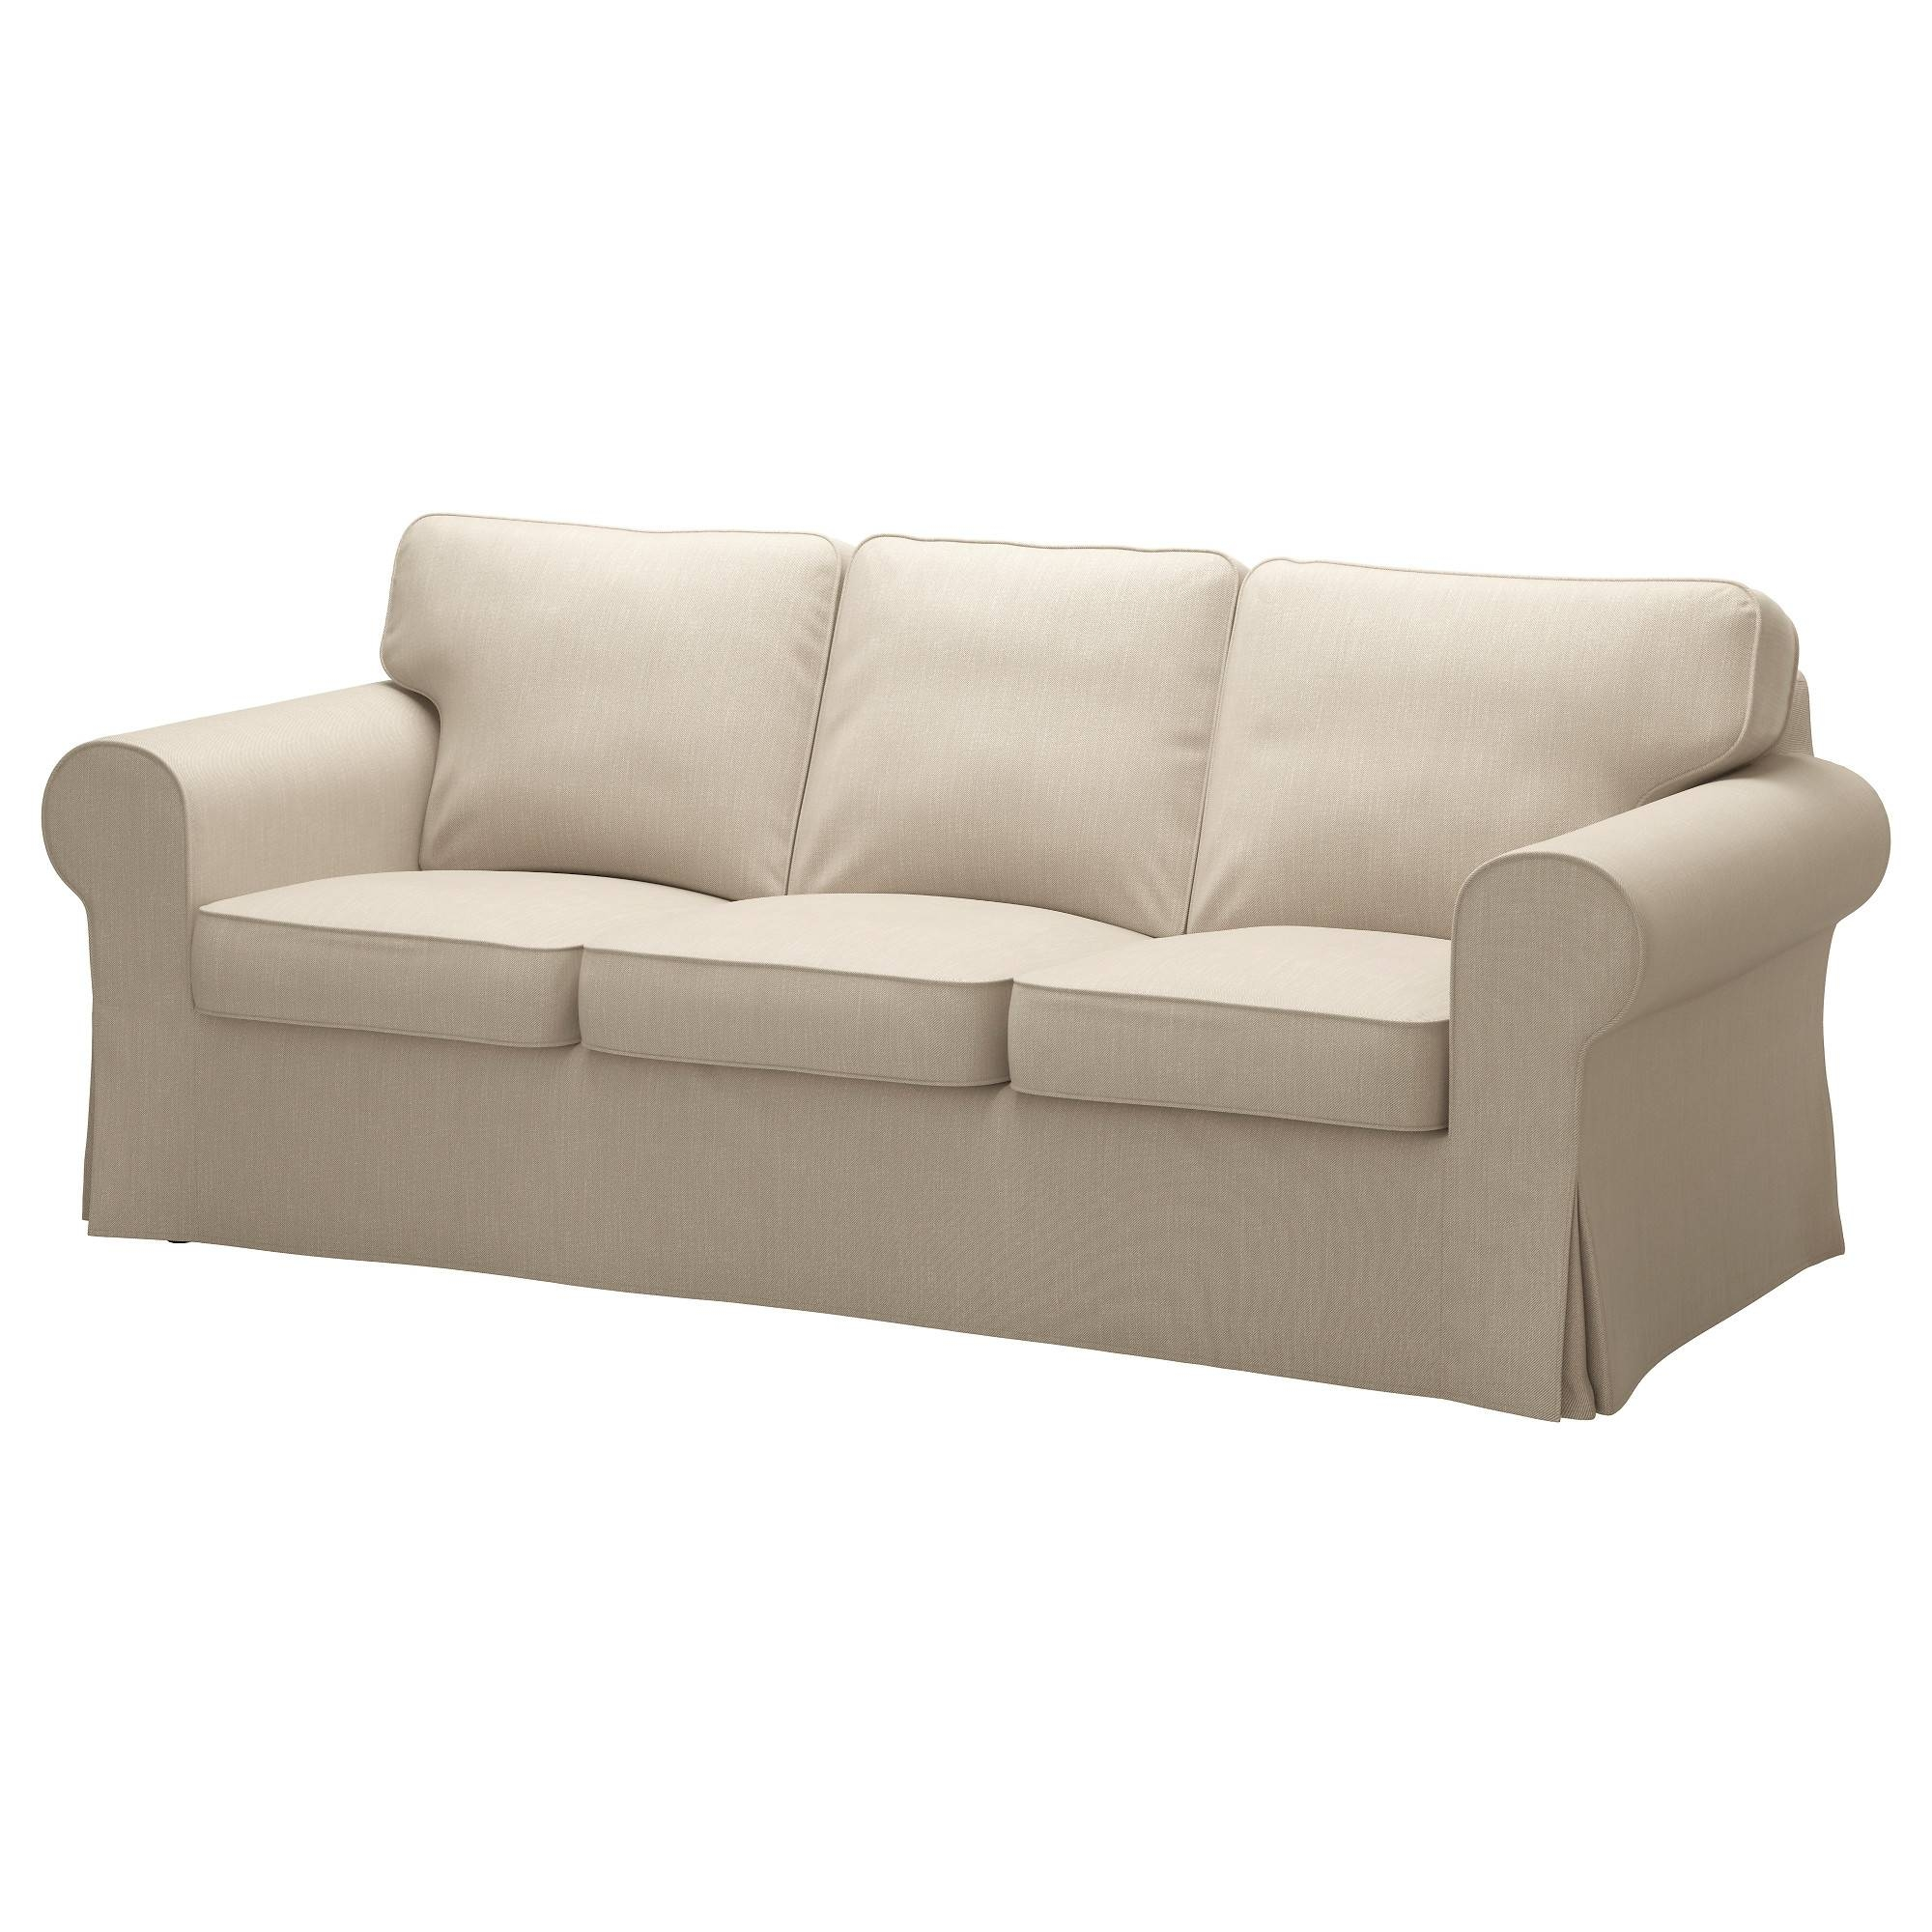 Ektorp Sofa   Lofallet Beige   Ikea With Regard To Beige Sofas (Photo 4 of 15)